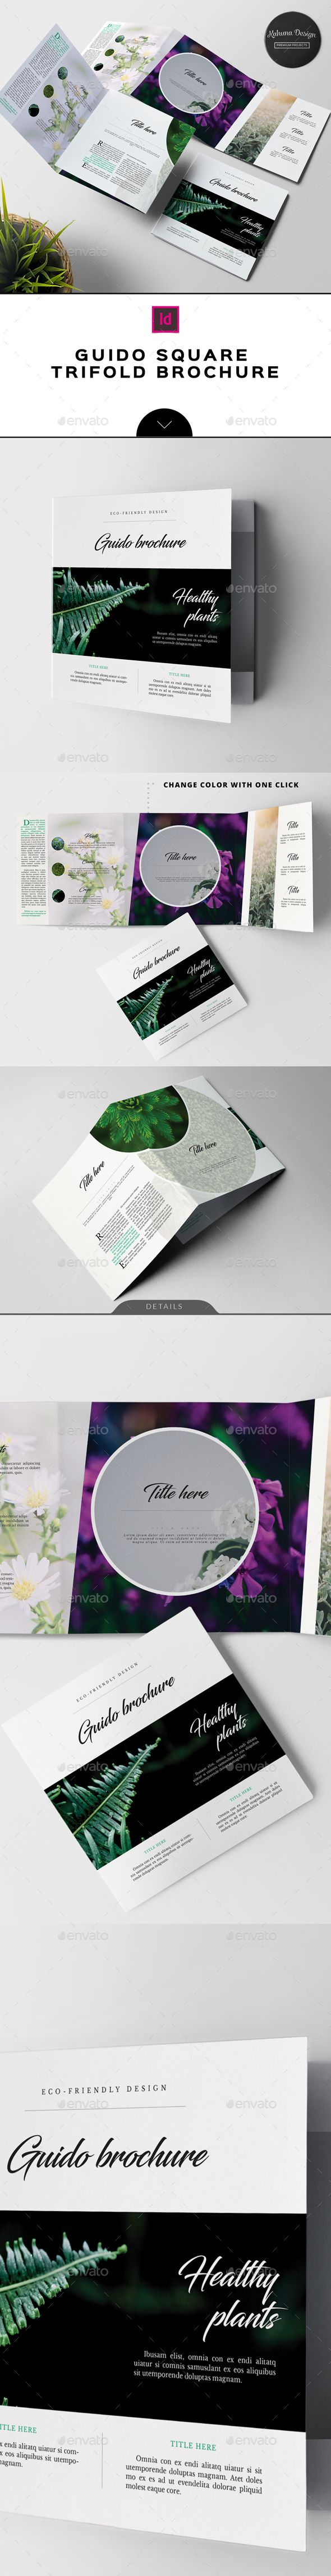 Guido Eco Garden Square Brochure | Adobe indesign, Adobe y Filo